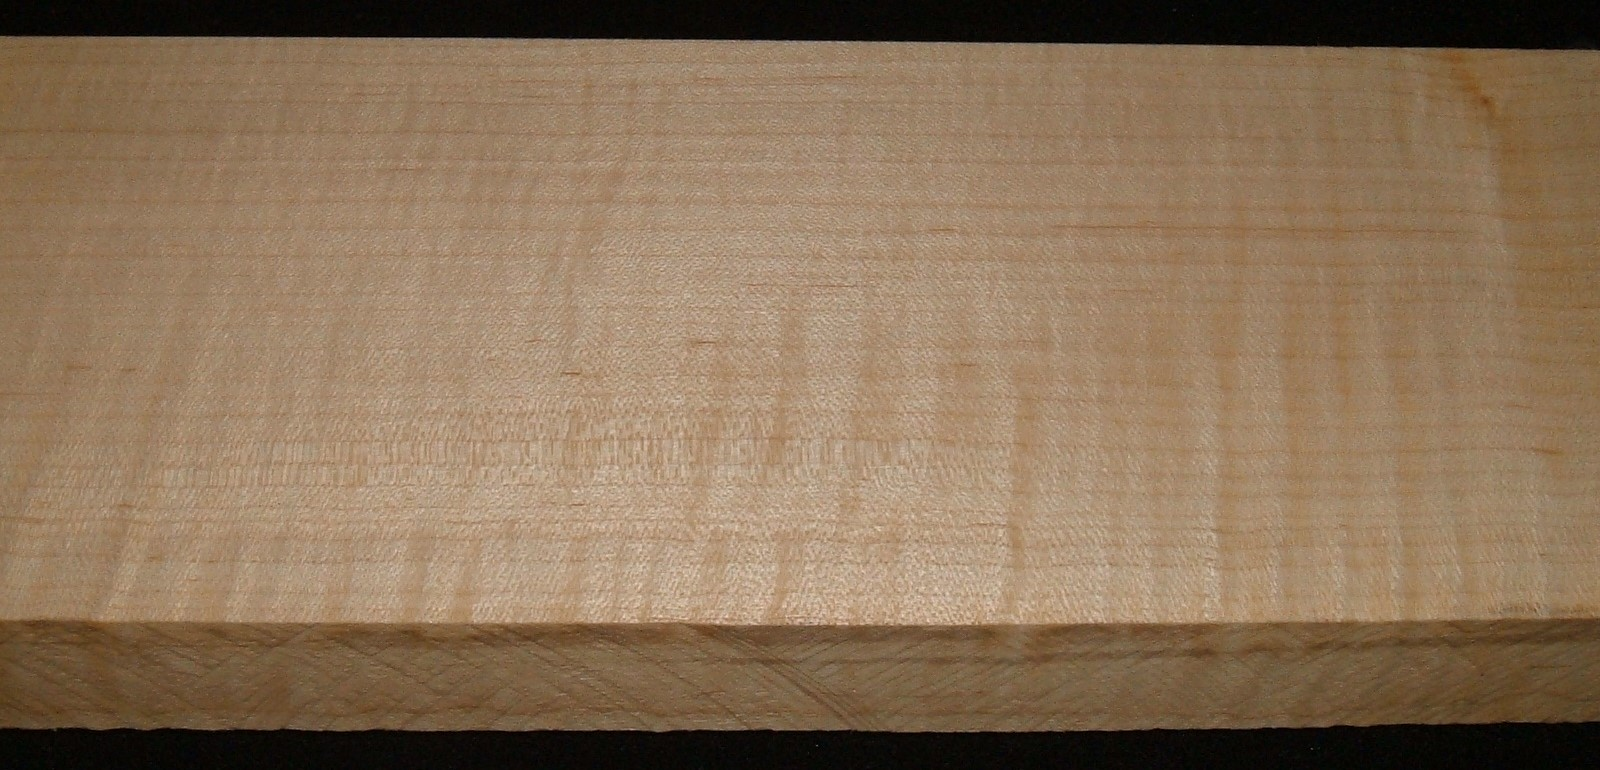 QS2104-45JK, 1-5/16x4-3/4x38, Quartersawn Curly Maple